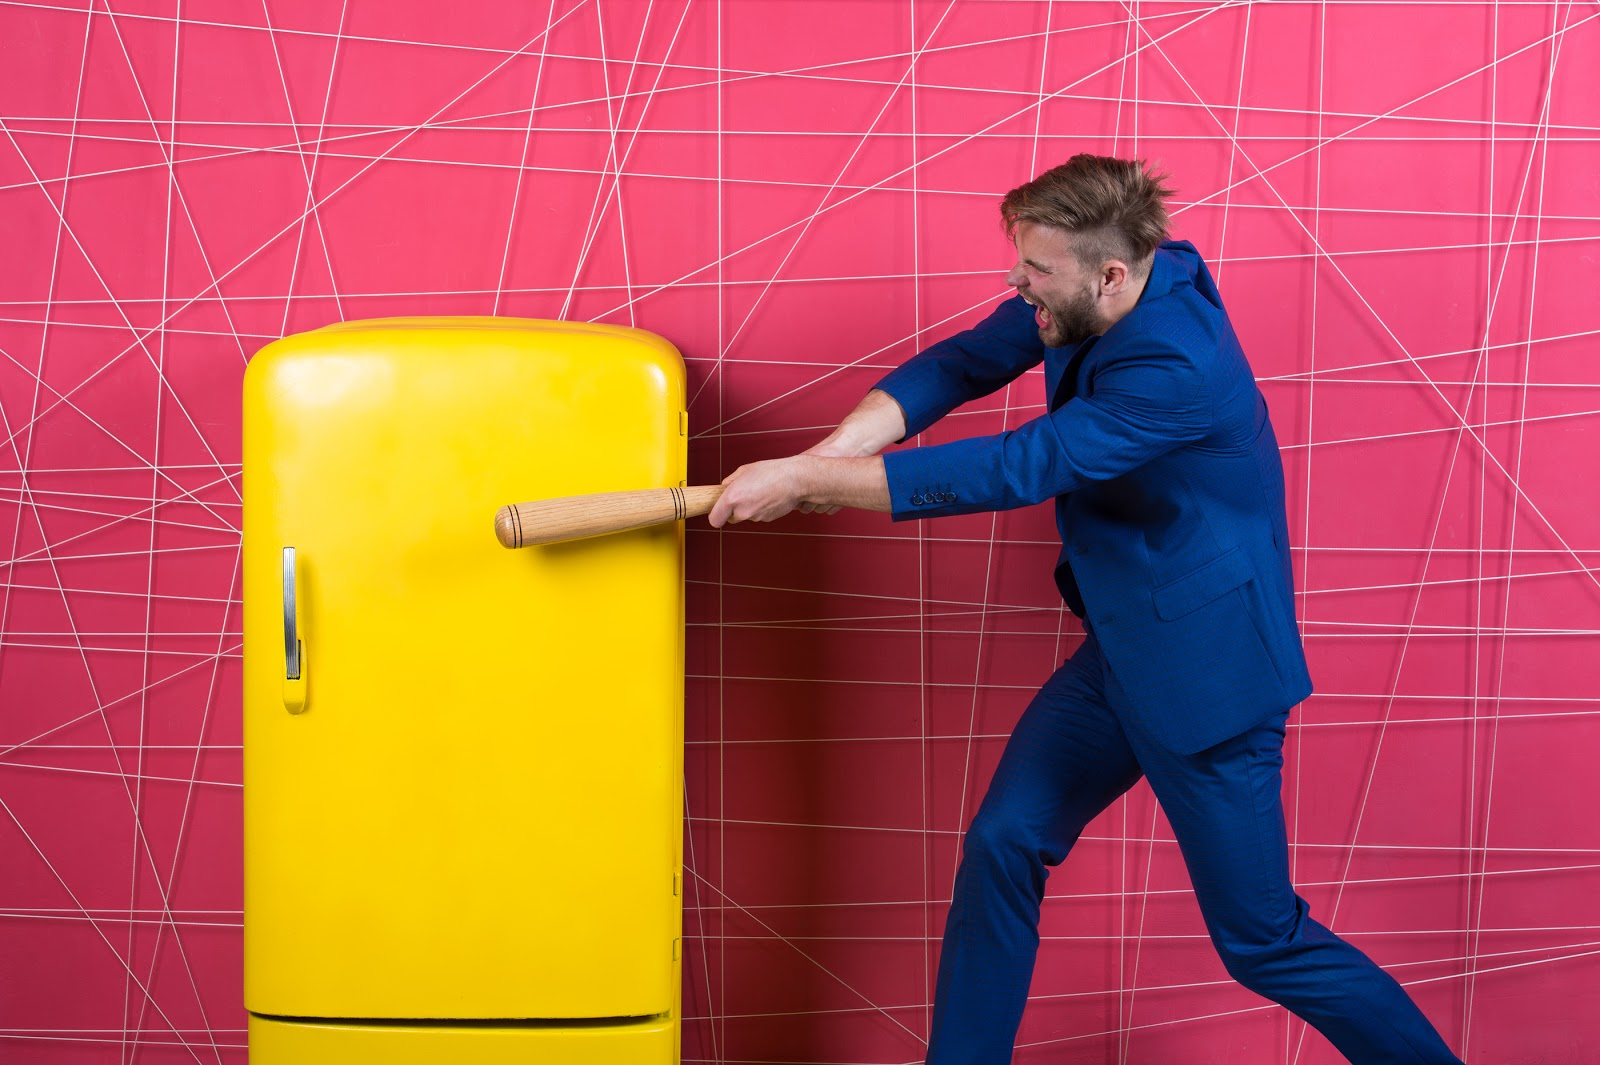 yellow-refrigerator-with-man-hitting-it-with-a-baseball-bat